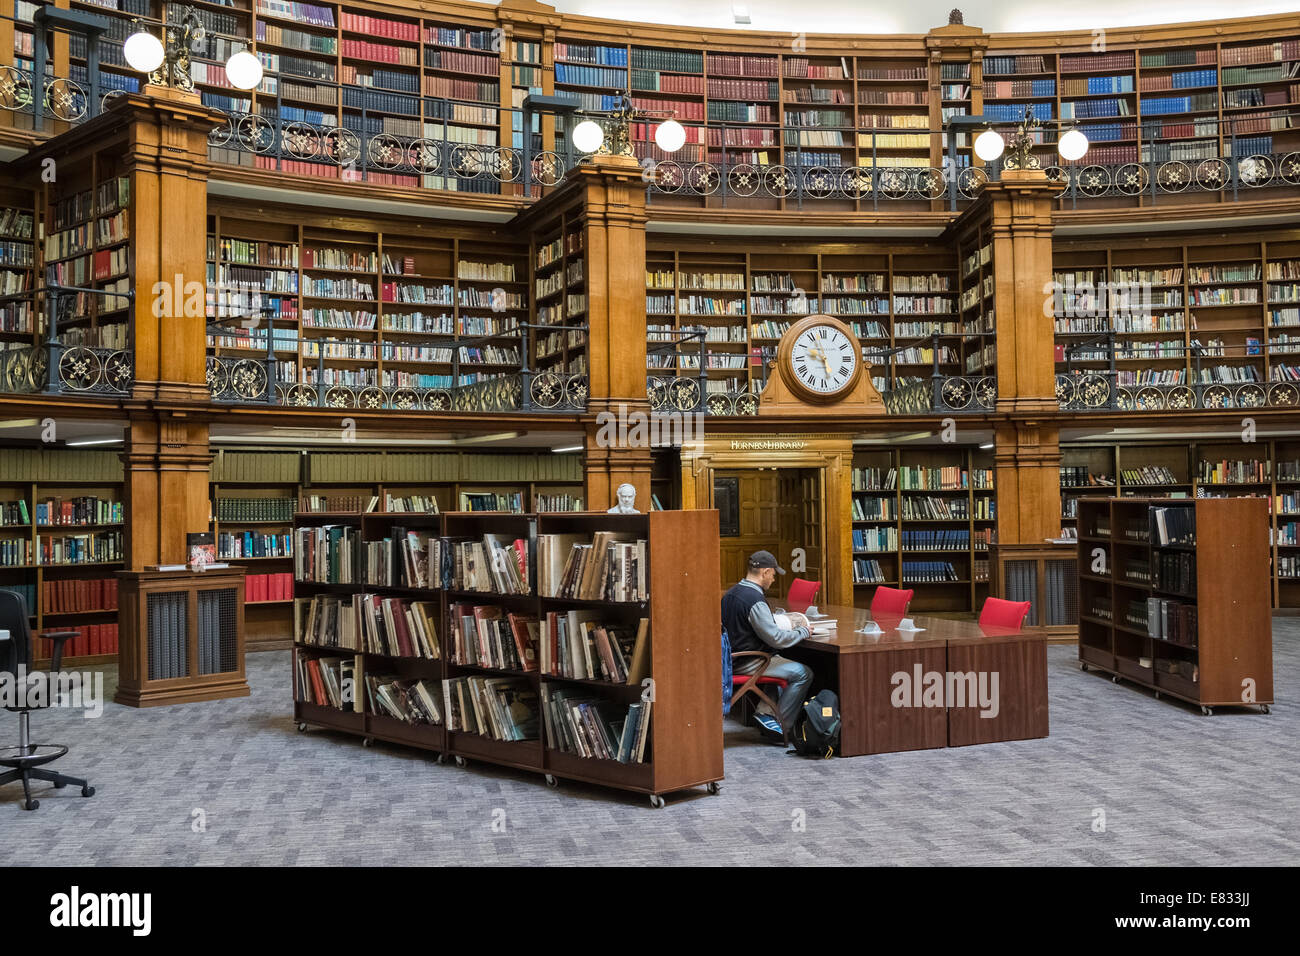 Liverpool Central Library interior, Picton Reading Room, William Brown Street, Liverpool, Merseyside, England UK Stock Photo